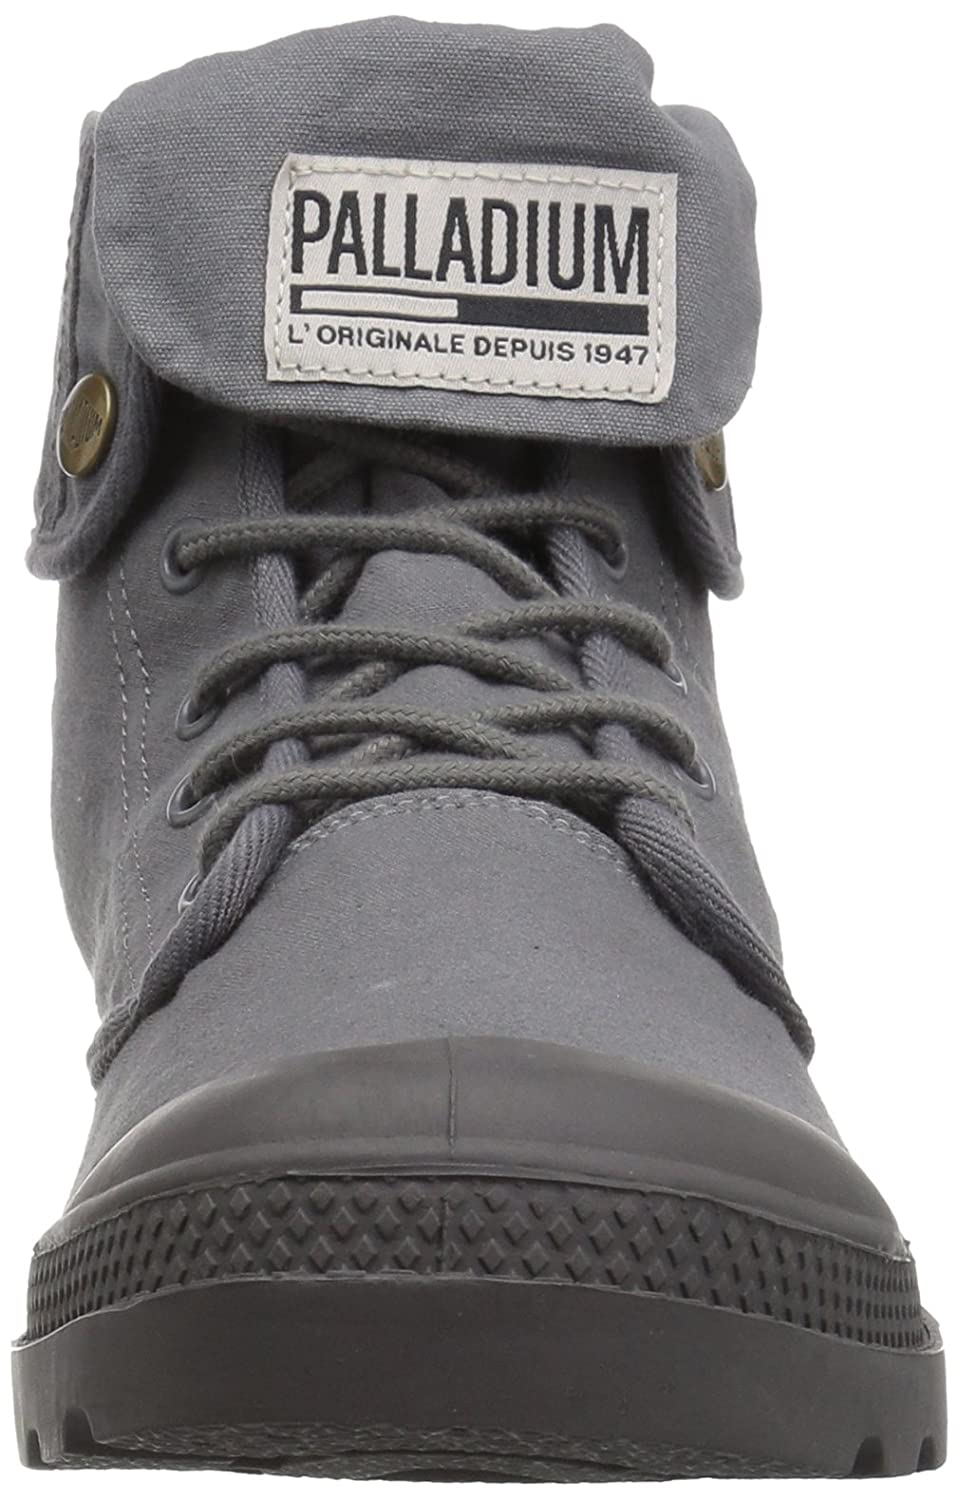 Palladium Baggy Army TRNG Camp Boot -Olive Drab/Beluga Textile Cheap Sale Latest Purchase Your Favorite SjL2Arh8SU